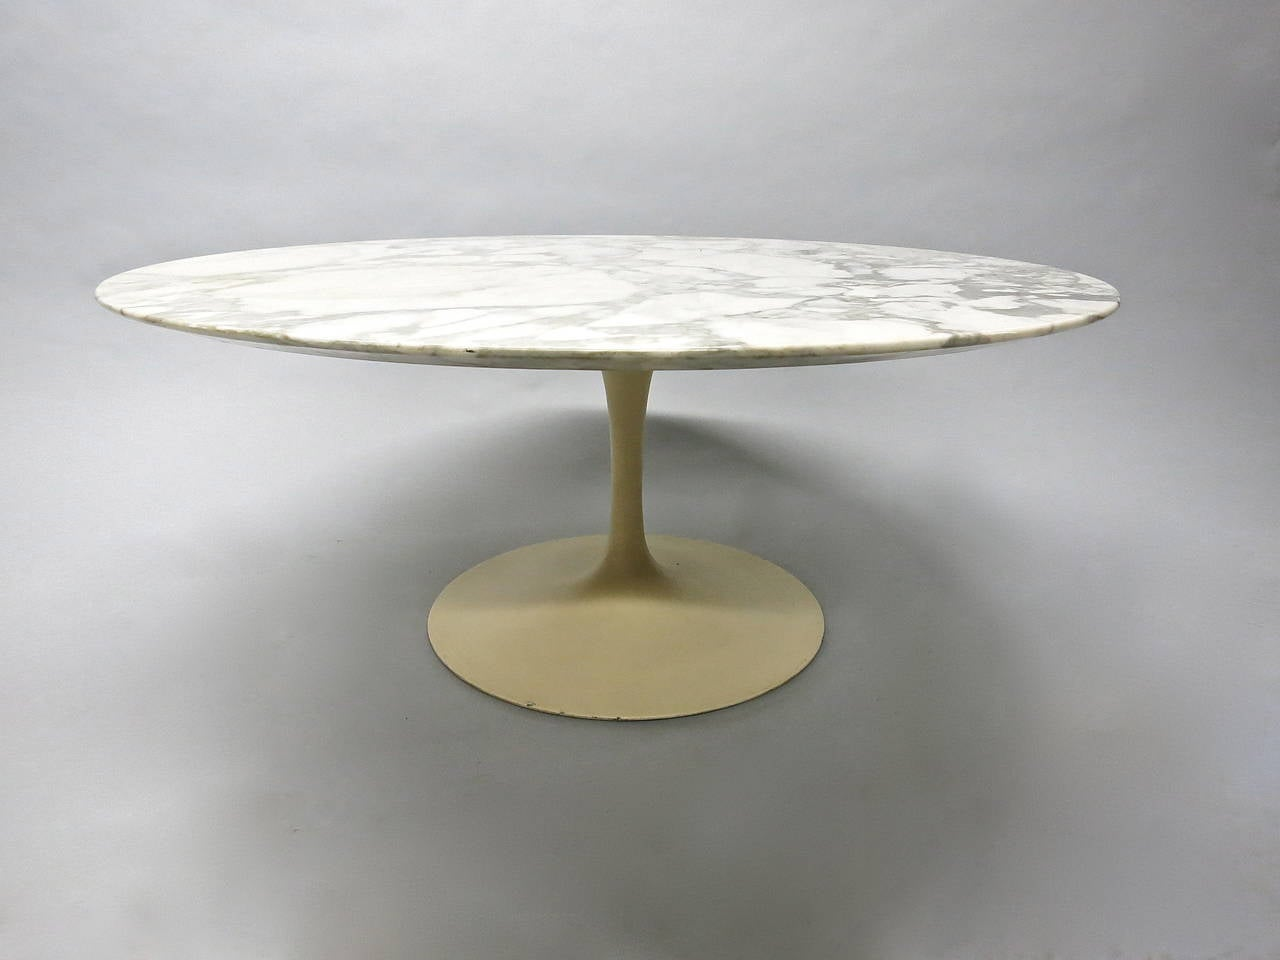 Round Marble Coffee Table Designed By Eero Saarinen For Knoll Usa Circa 1960 At 1stdibs